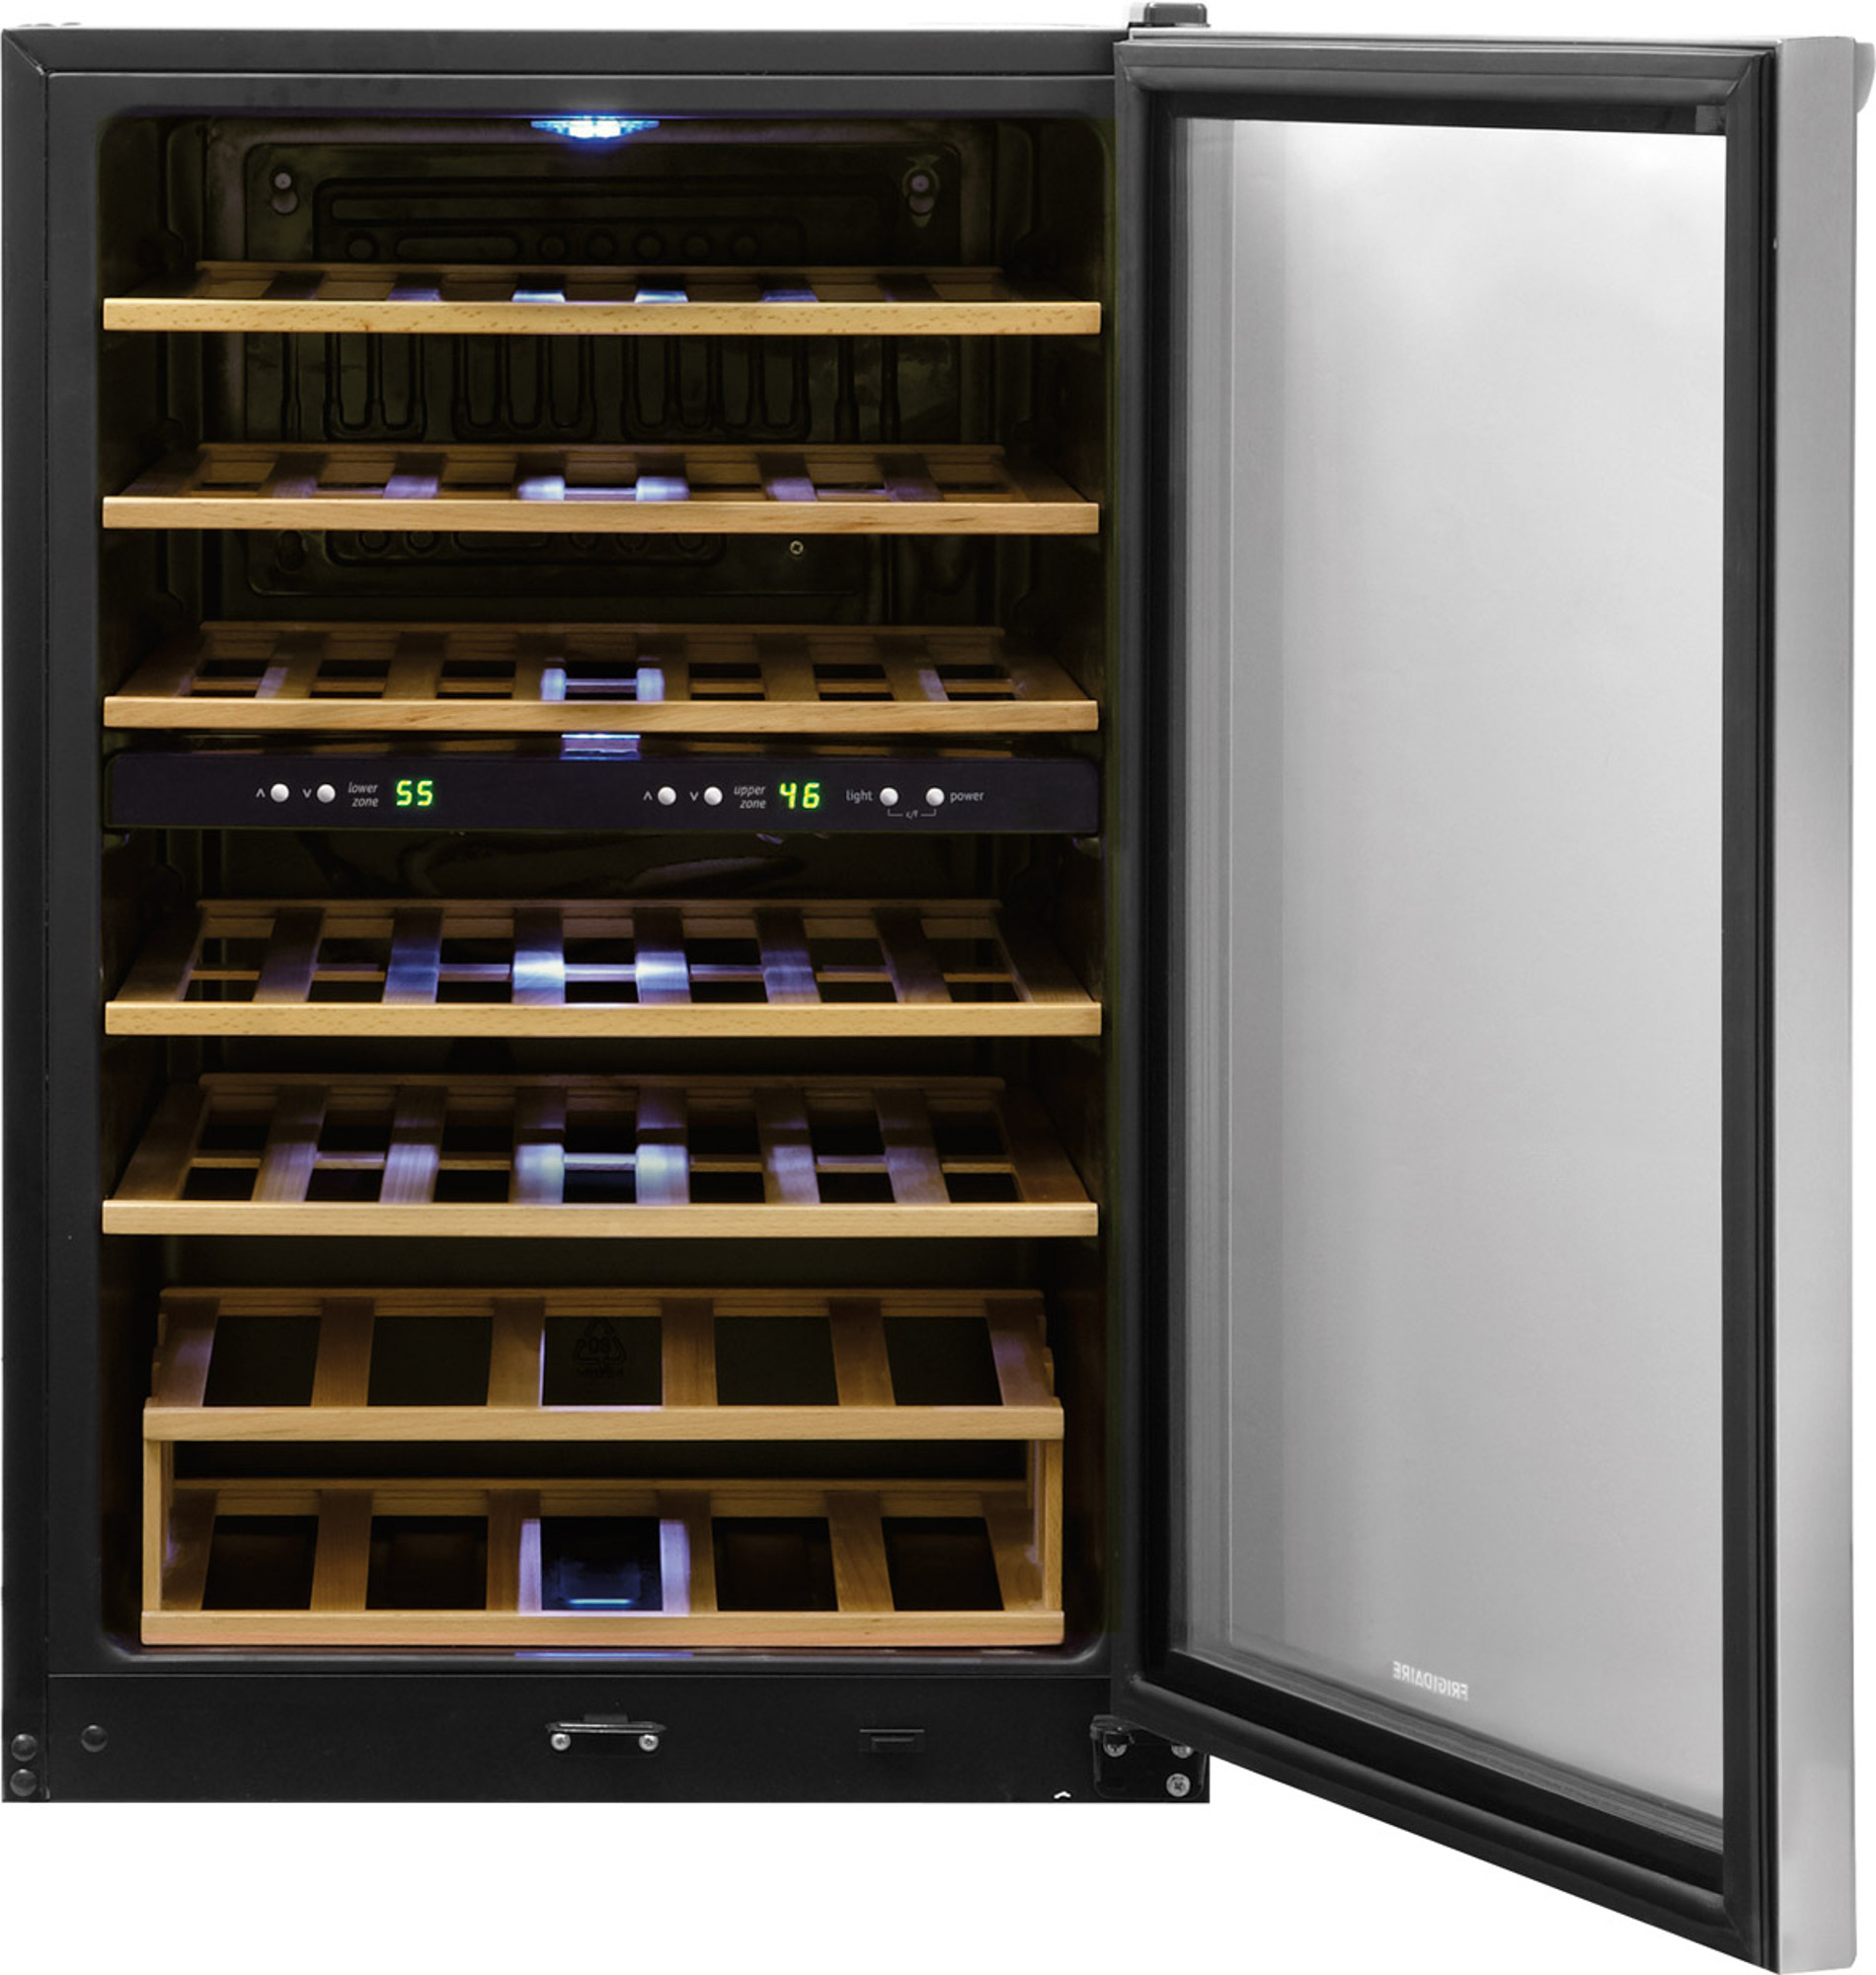 Frigidaire FFWC3822QS 4.4 cu. ft. Wine Cooler - Stainless Steel FFWC3822QS